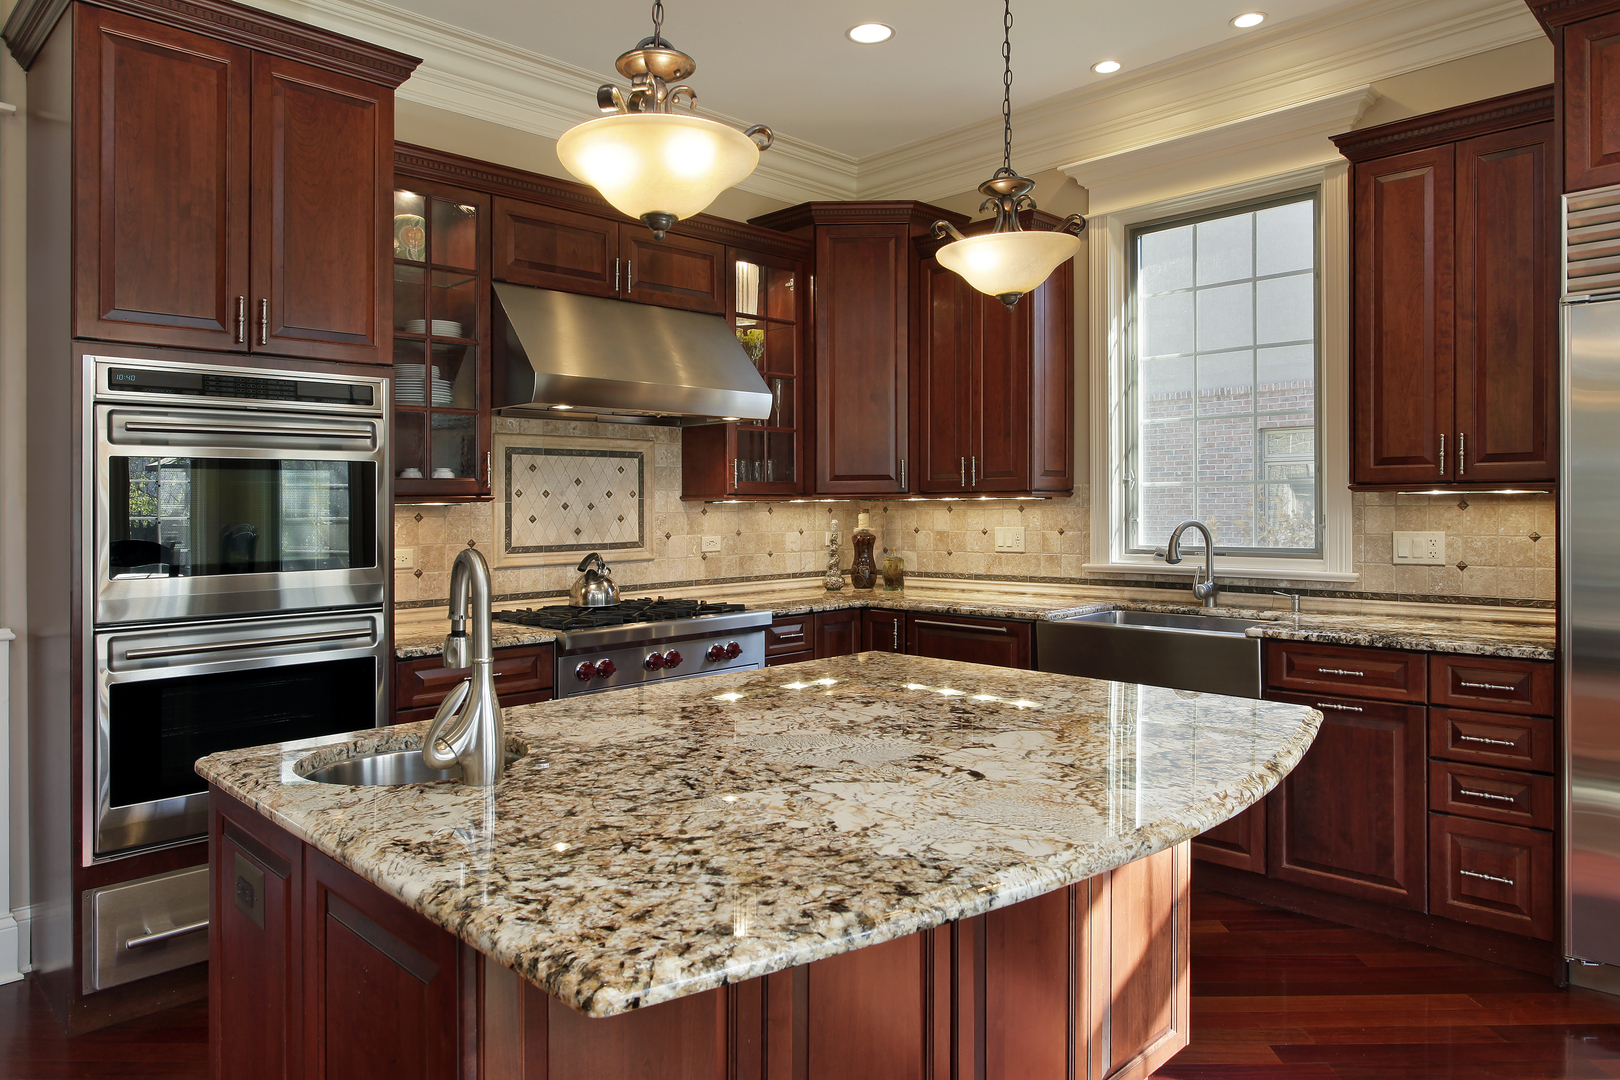 bathroom countertop backsplash caesarstone are stunning design white how tile countertops designs cost refined for countertos cabinets with kitchen much usa quartz fabulous pricing and cambria